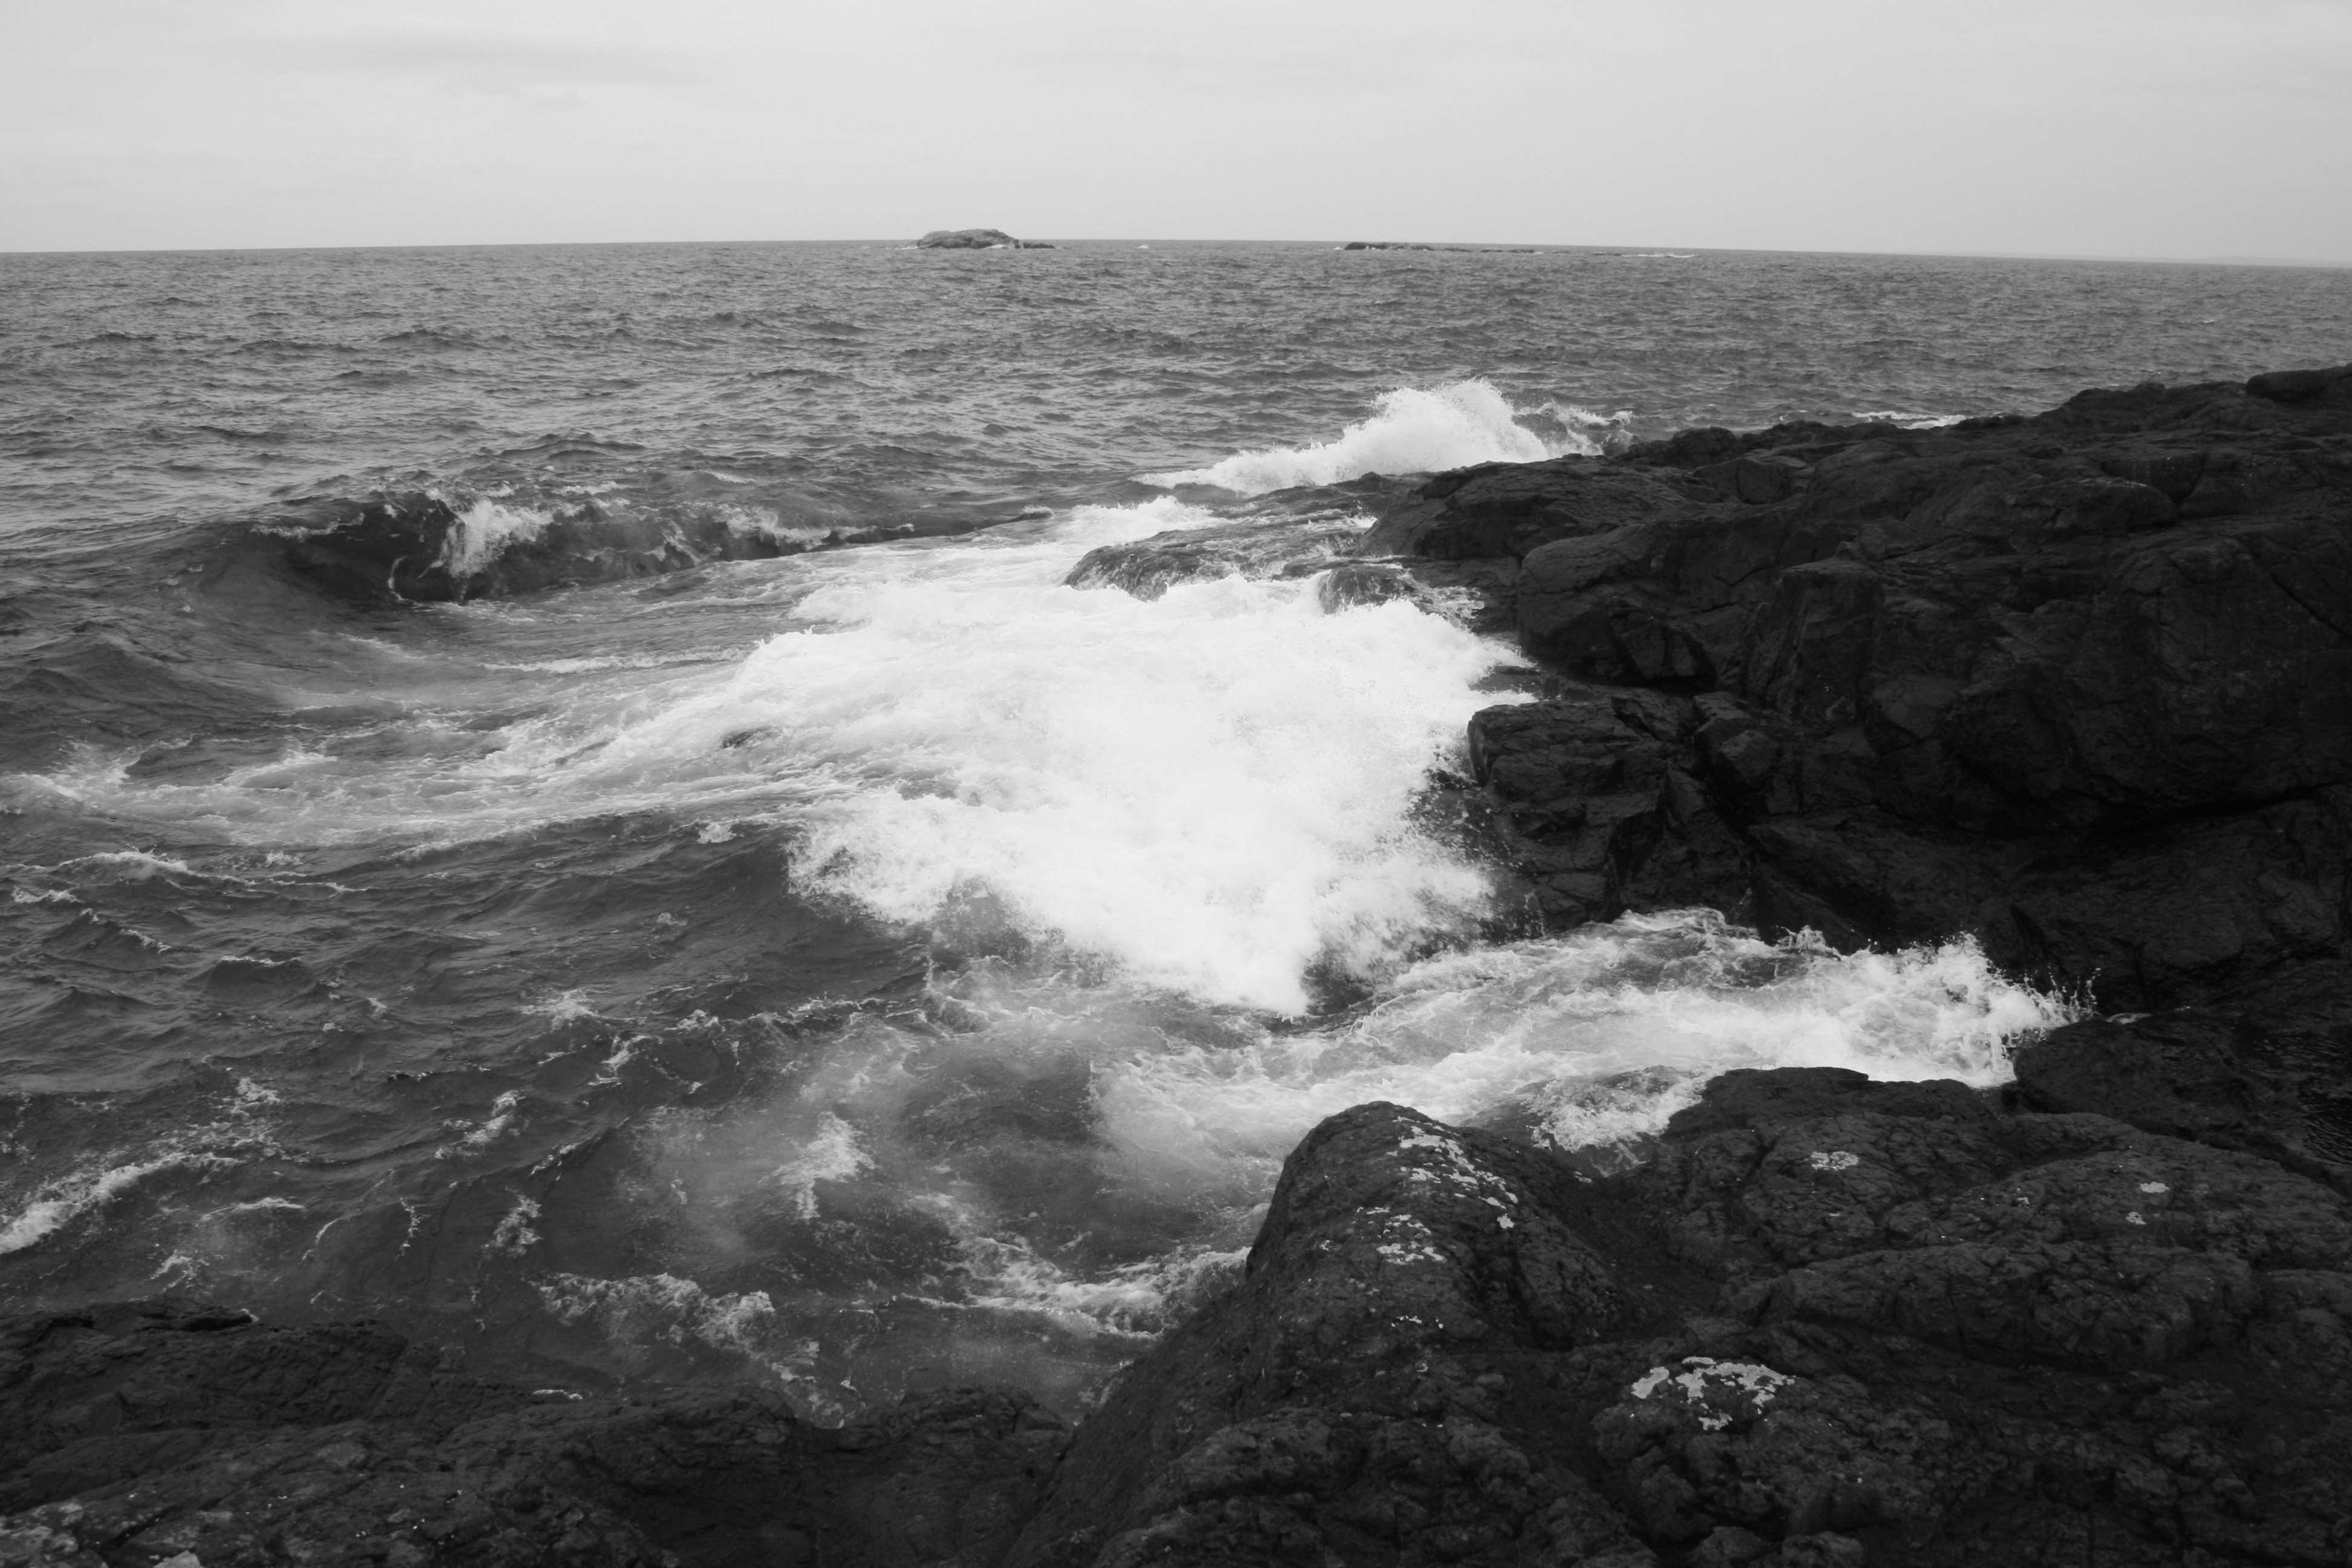 Black stone, white sea | Lake Superior Spirit